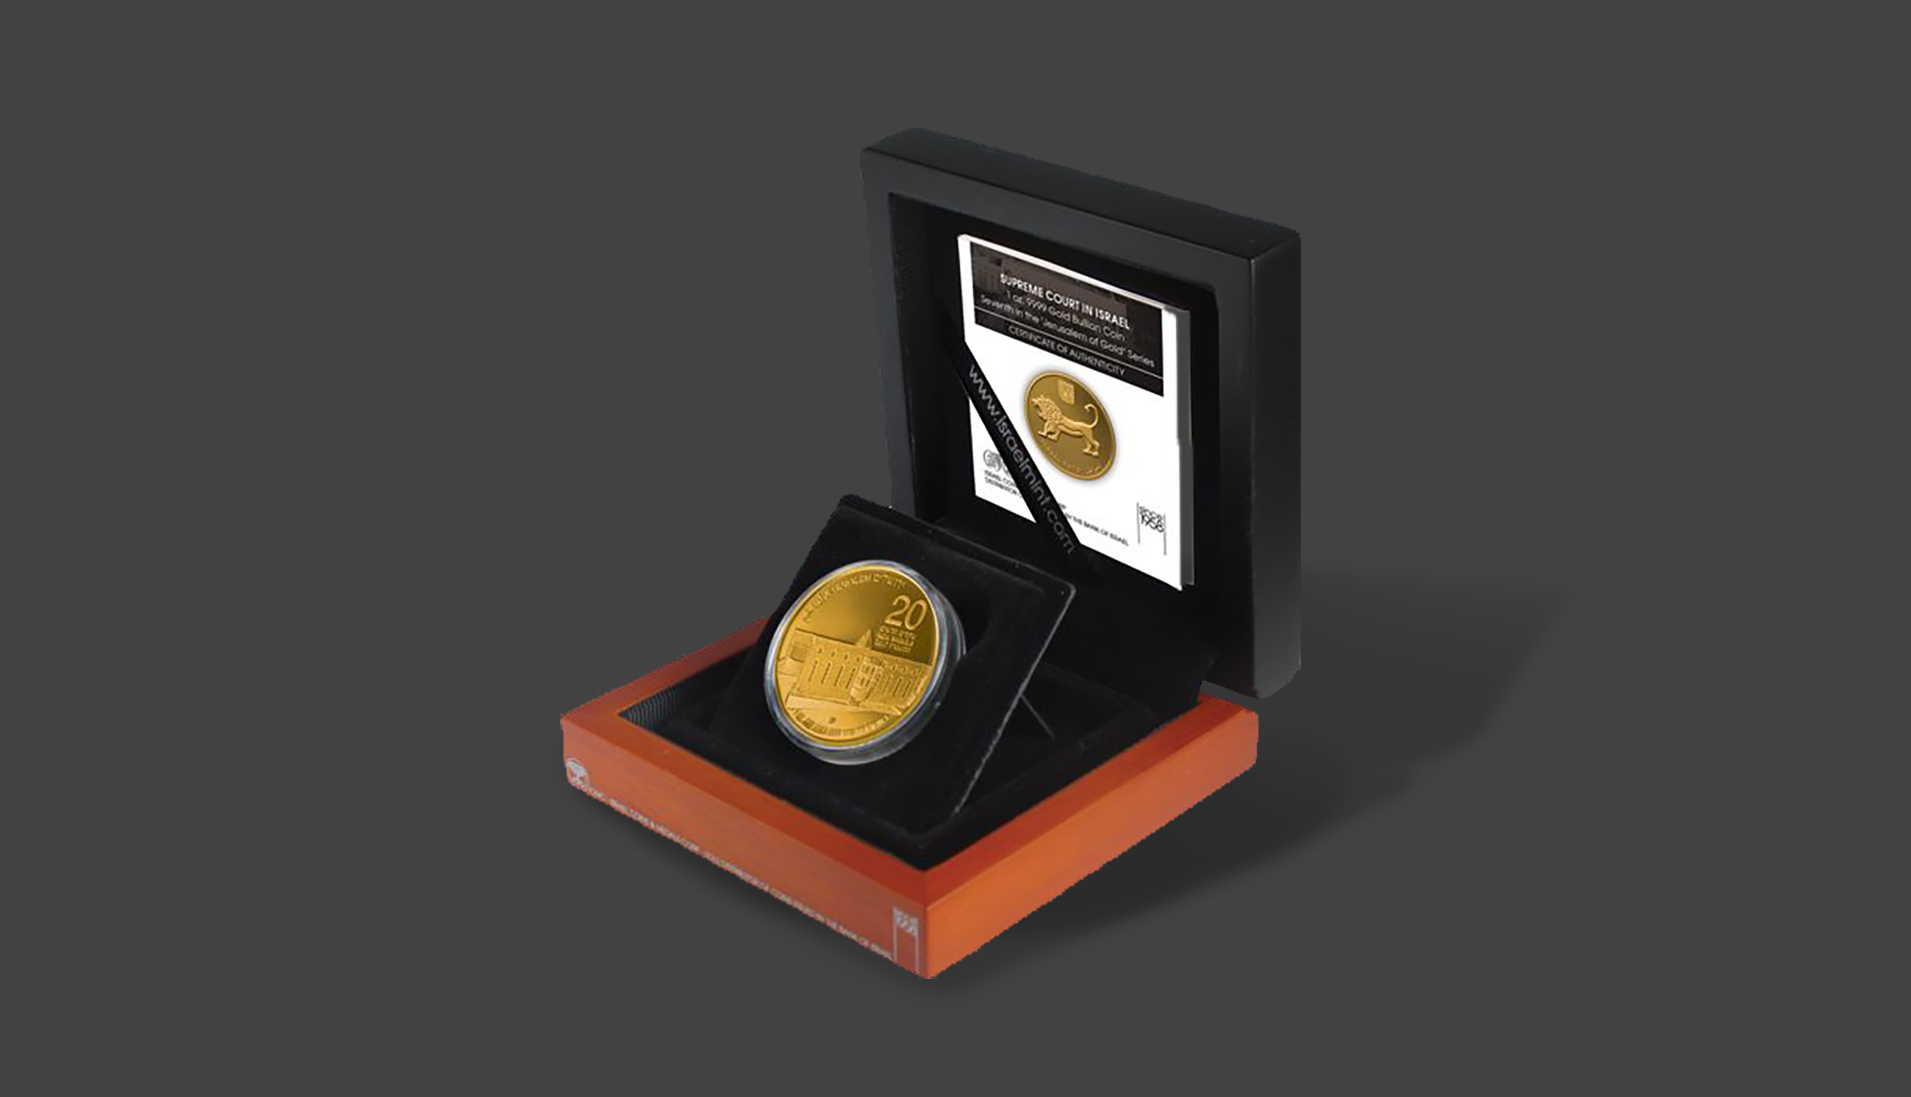 """Seventh in the """"Jerusalem of Gold"""" Bullion Coin Series Legal Tender issued by the Bank of Israel"""